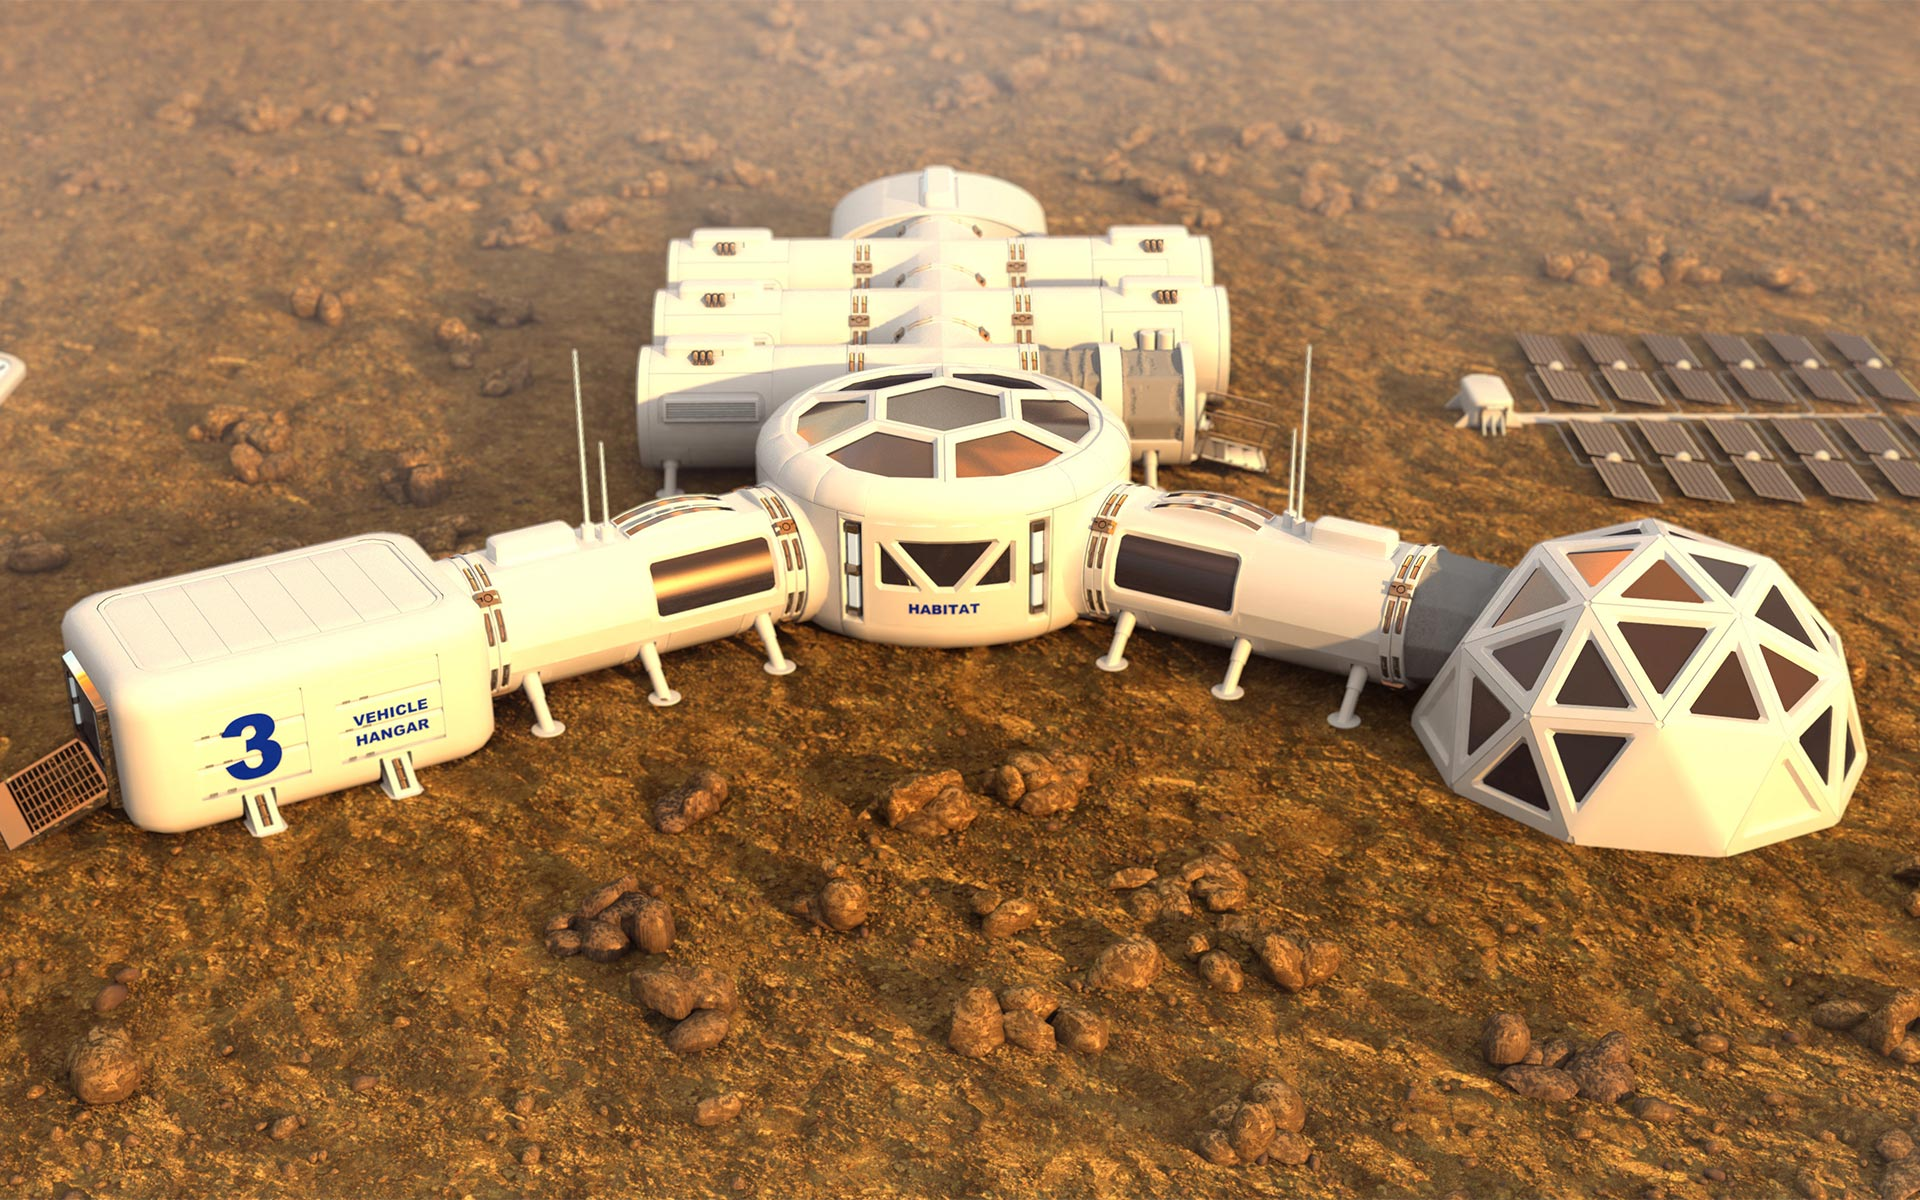 3D render of a human habitat on another planet